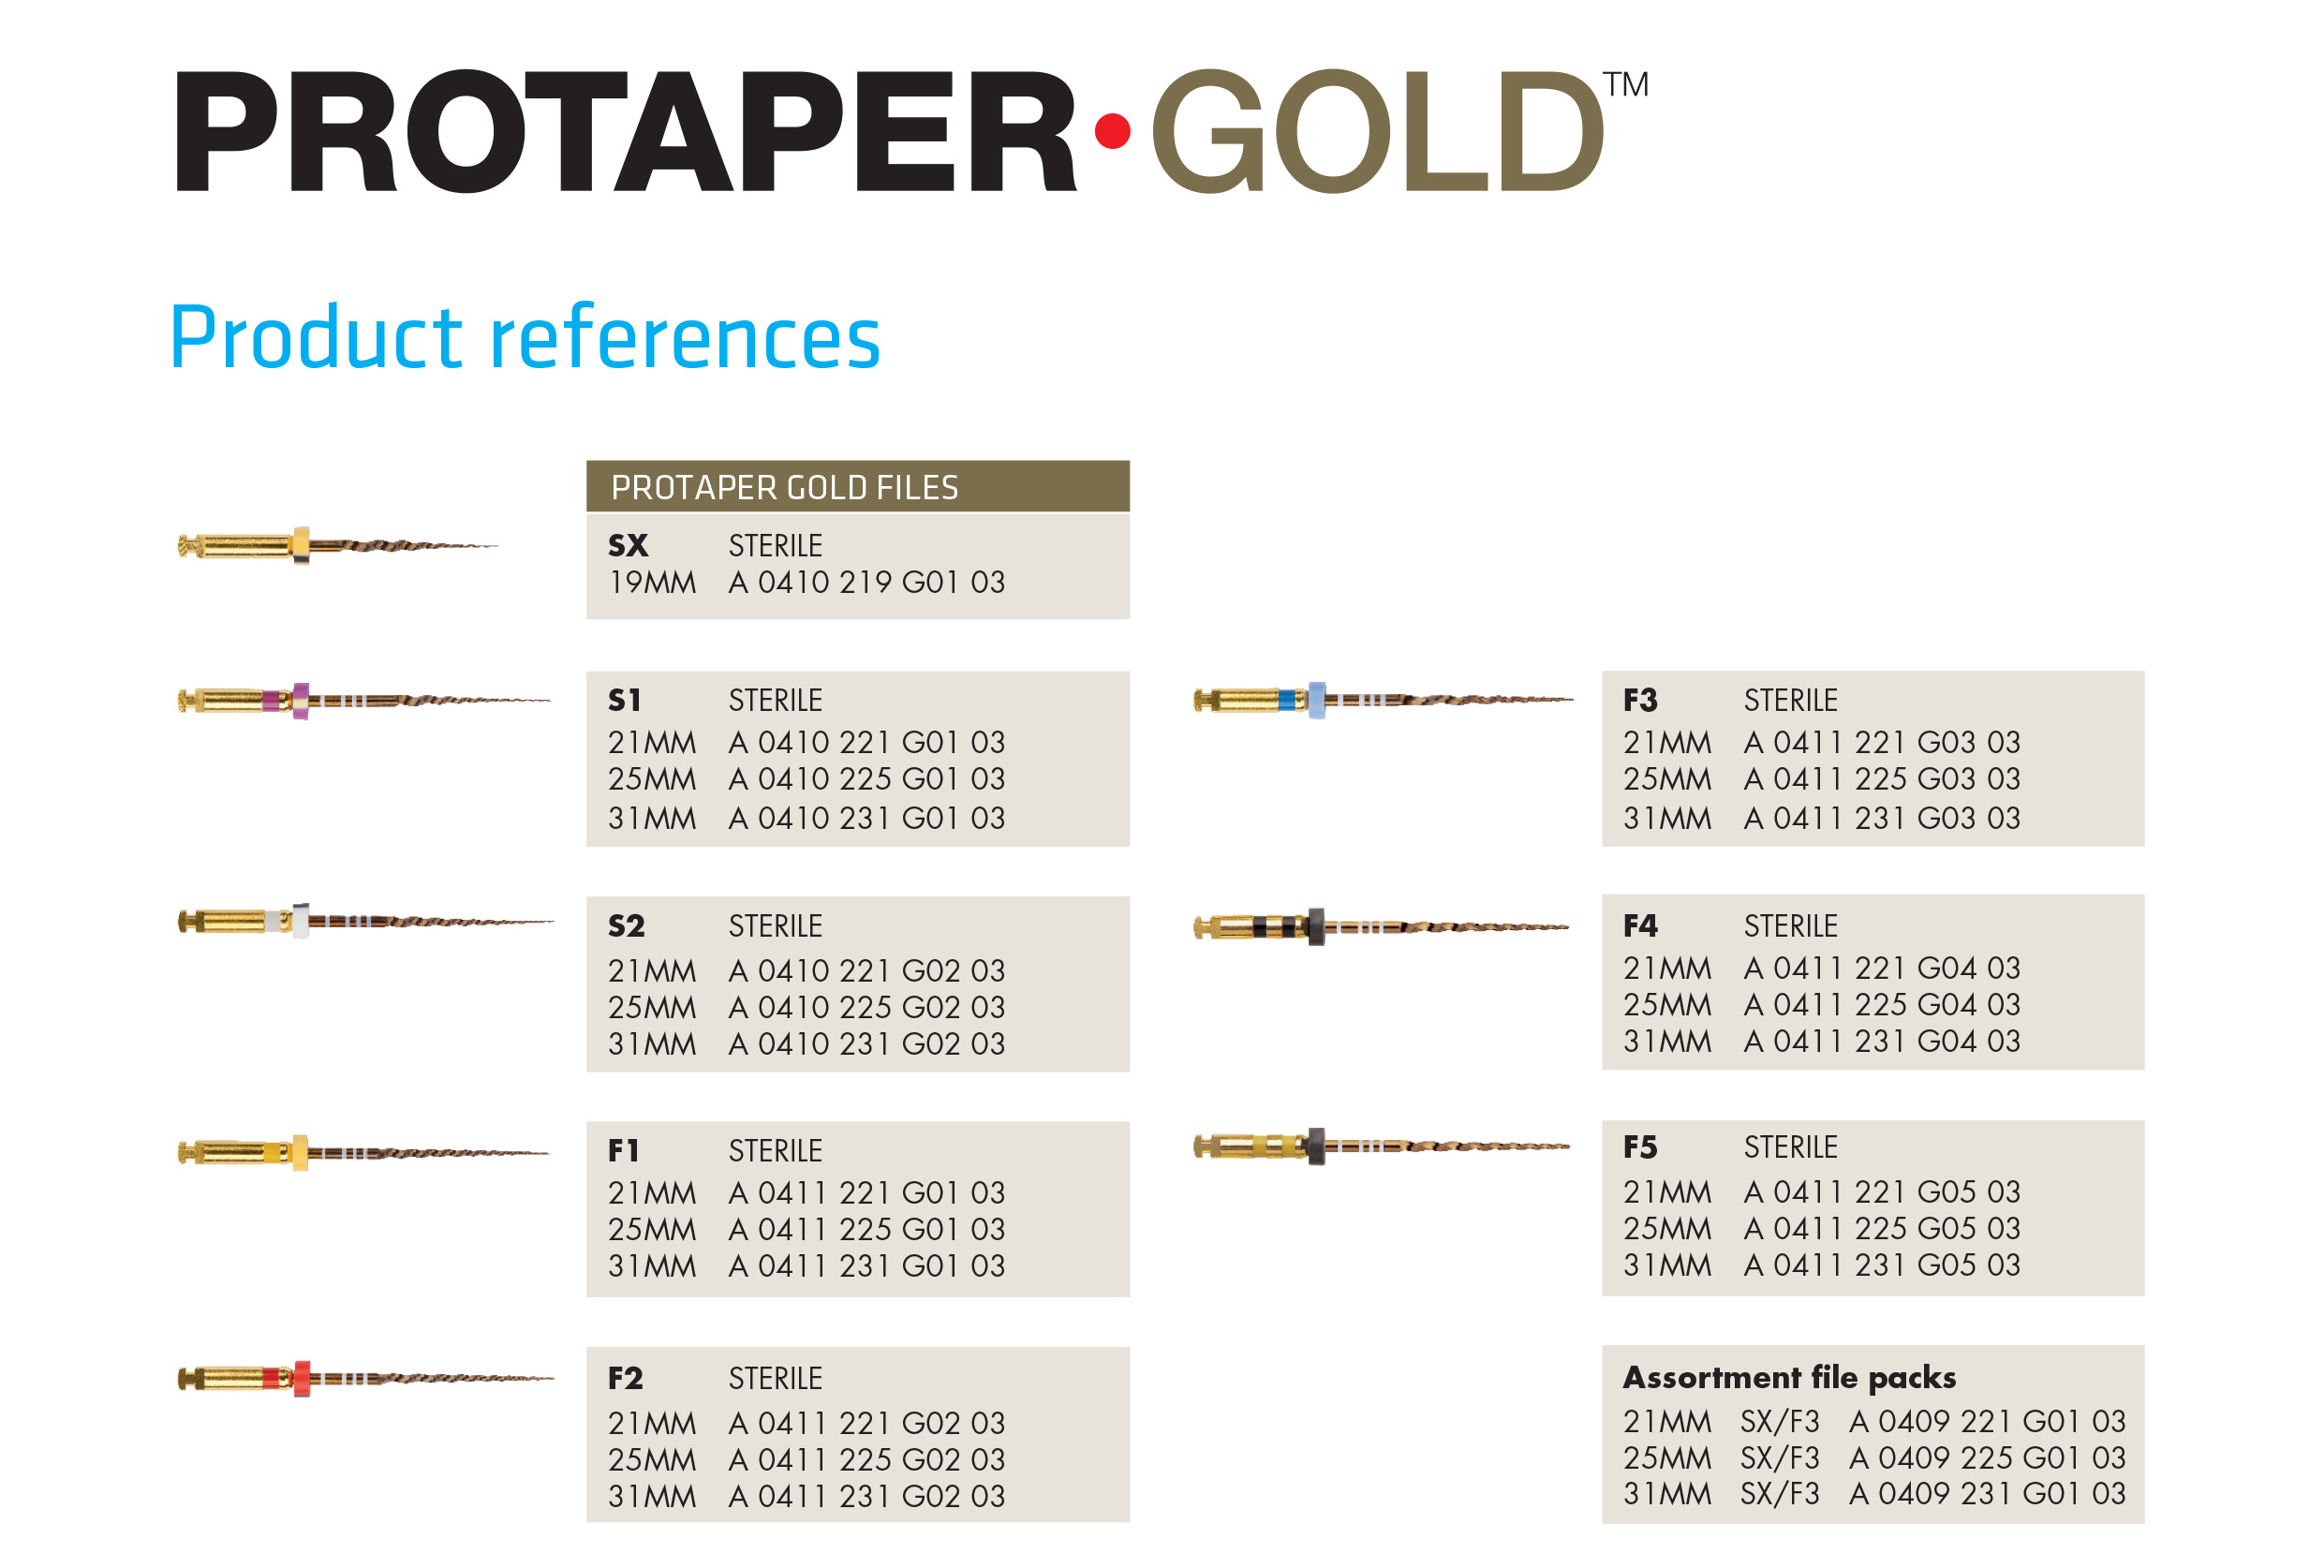 DH20476 ProTaper GOLD 2pp A4 Flyer